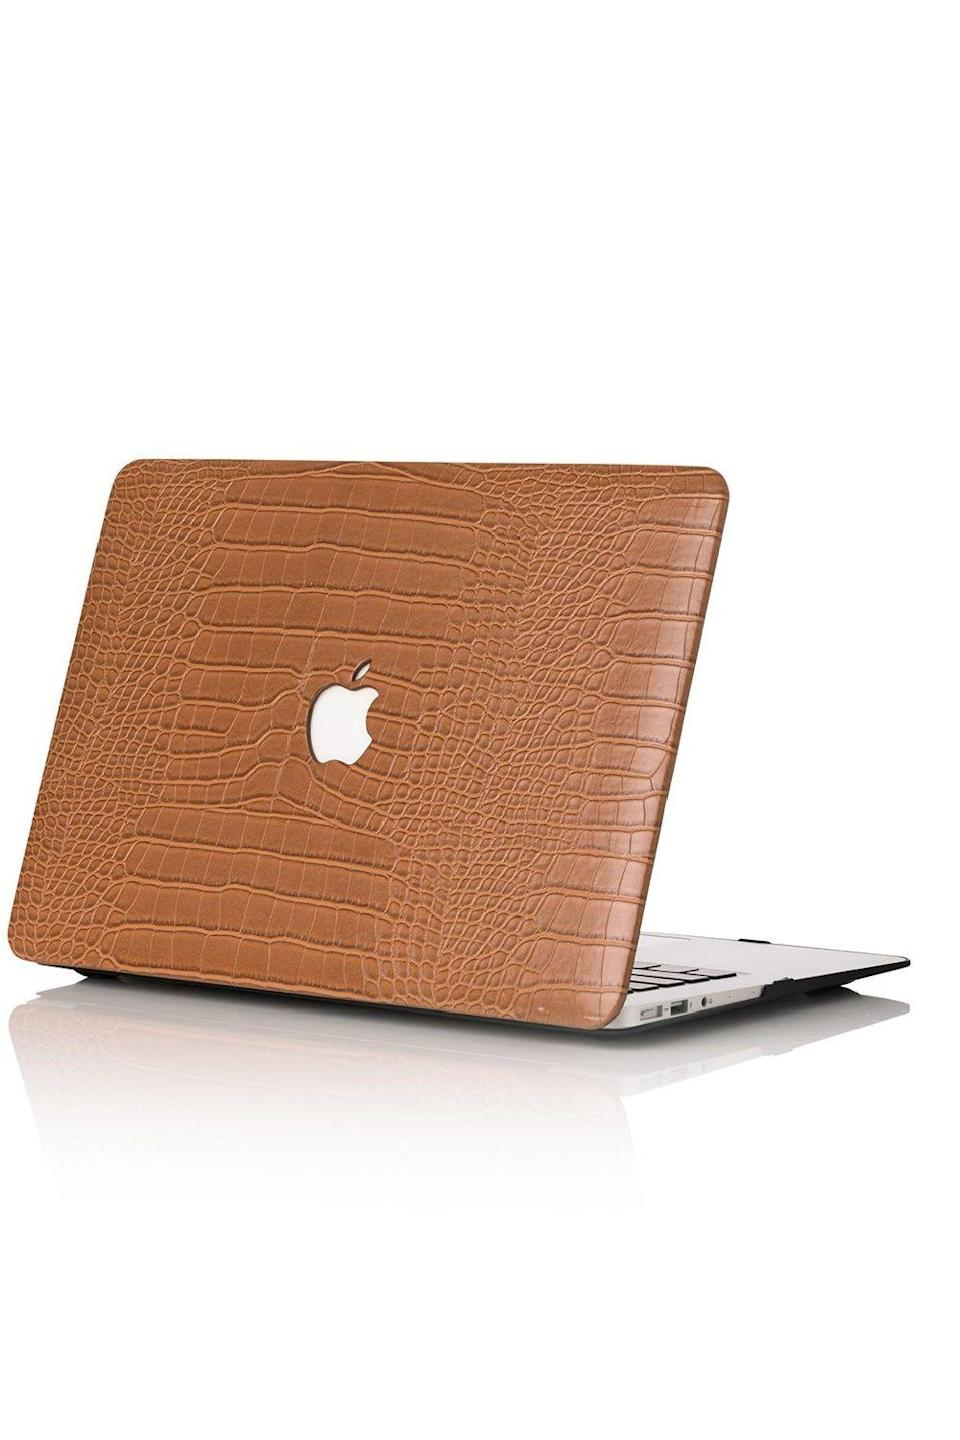 "<p><strong>Chic Geeks</strong></p><p>chicgeeks.com</p><p><strong>$95.00</strong></p><p><a href=""https://chicgeeks.com/collections/macbook-cases/products/caramel-faux-crocodile-macbook-case"" rel=""nofollow noopener"" target=""_blank"" data-ylk=""slk:Shop Now"" class=""link rapid-noclick-resp"">Shop Now</a></p><p>Help them take better care of their laptop with this faux croc case that protects electronics <em>without</em> sacrificing style.</p>"